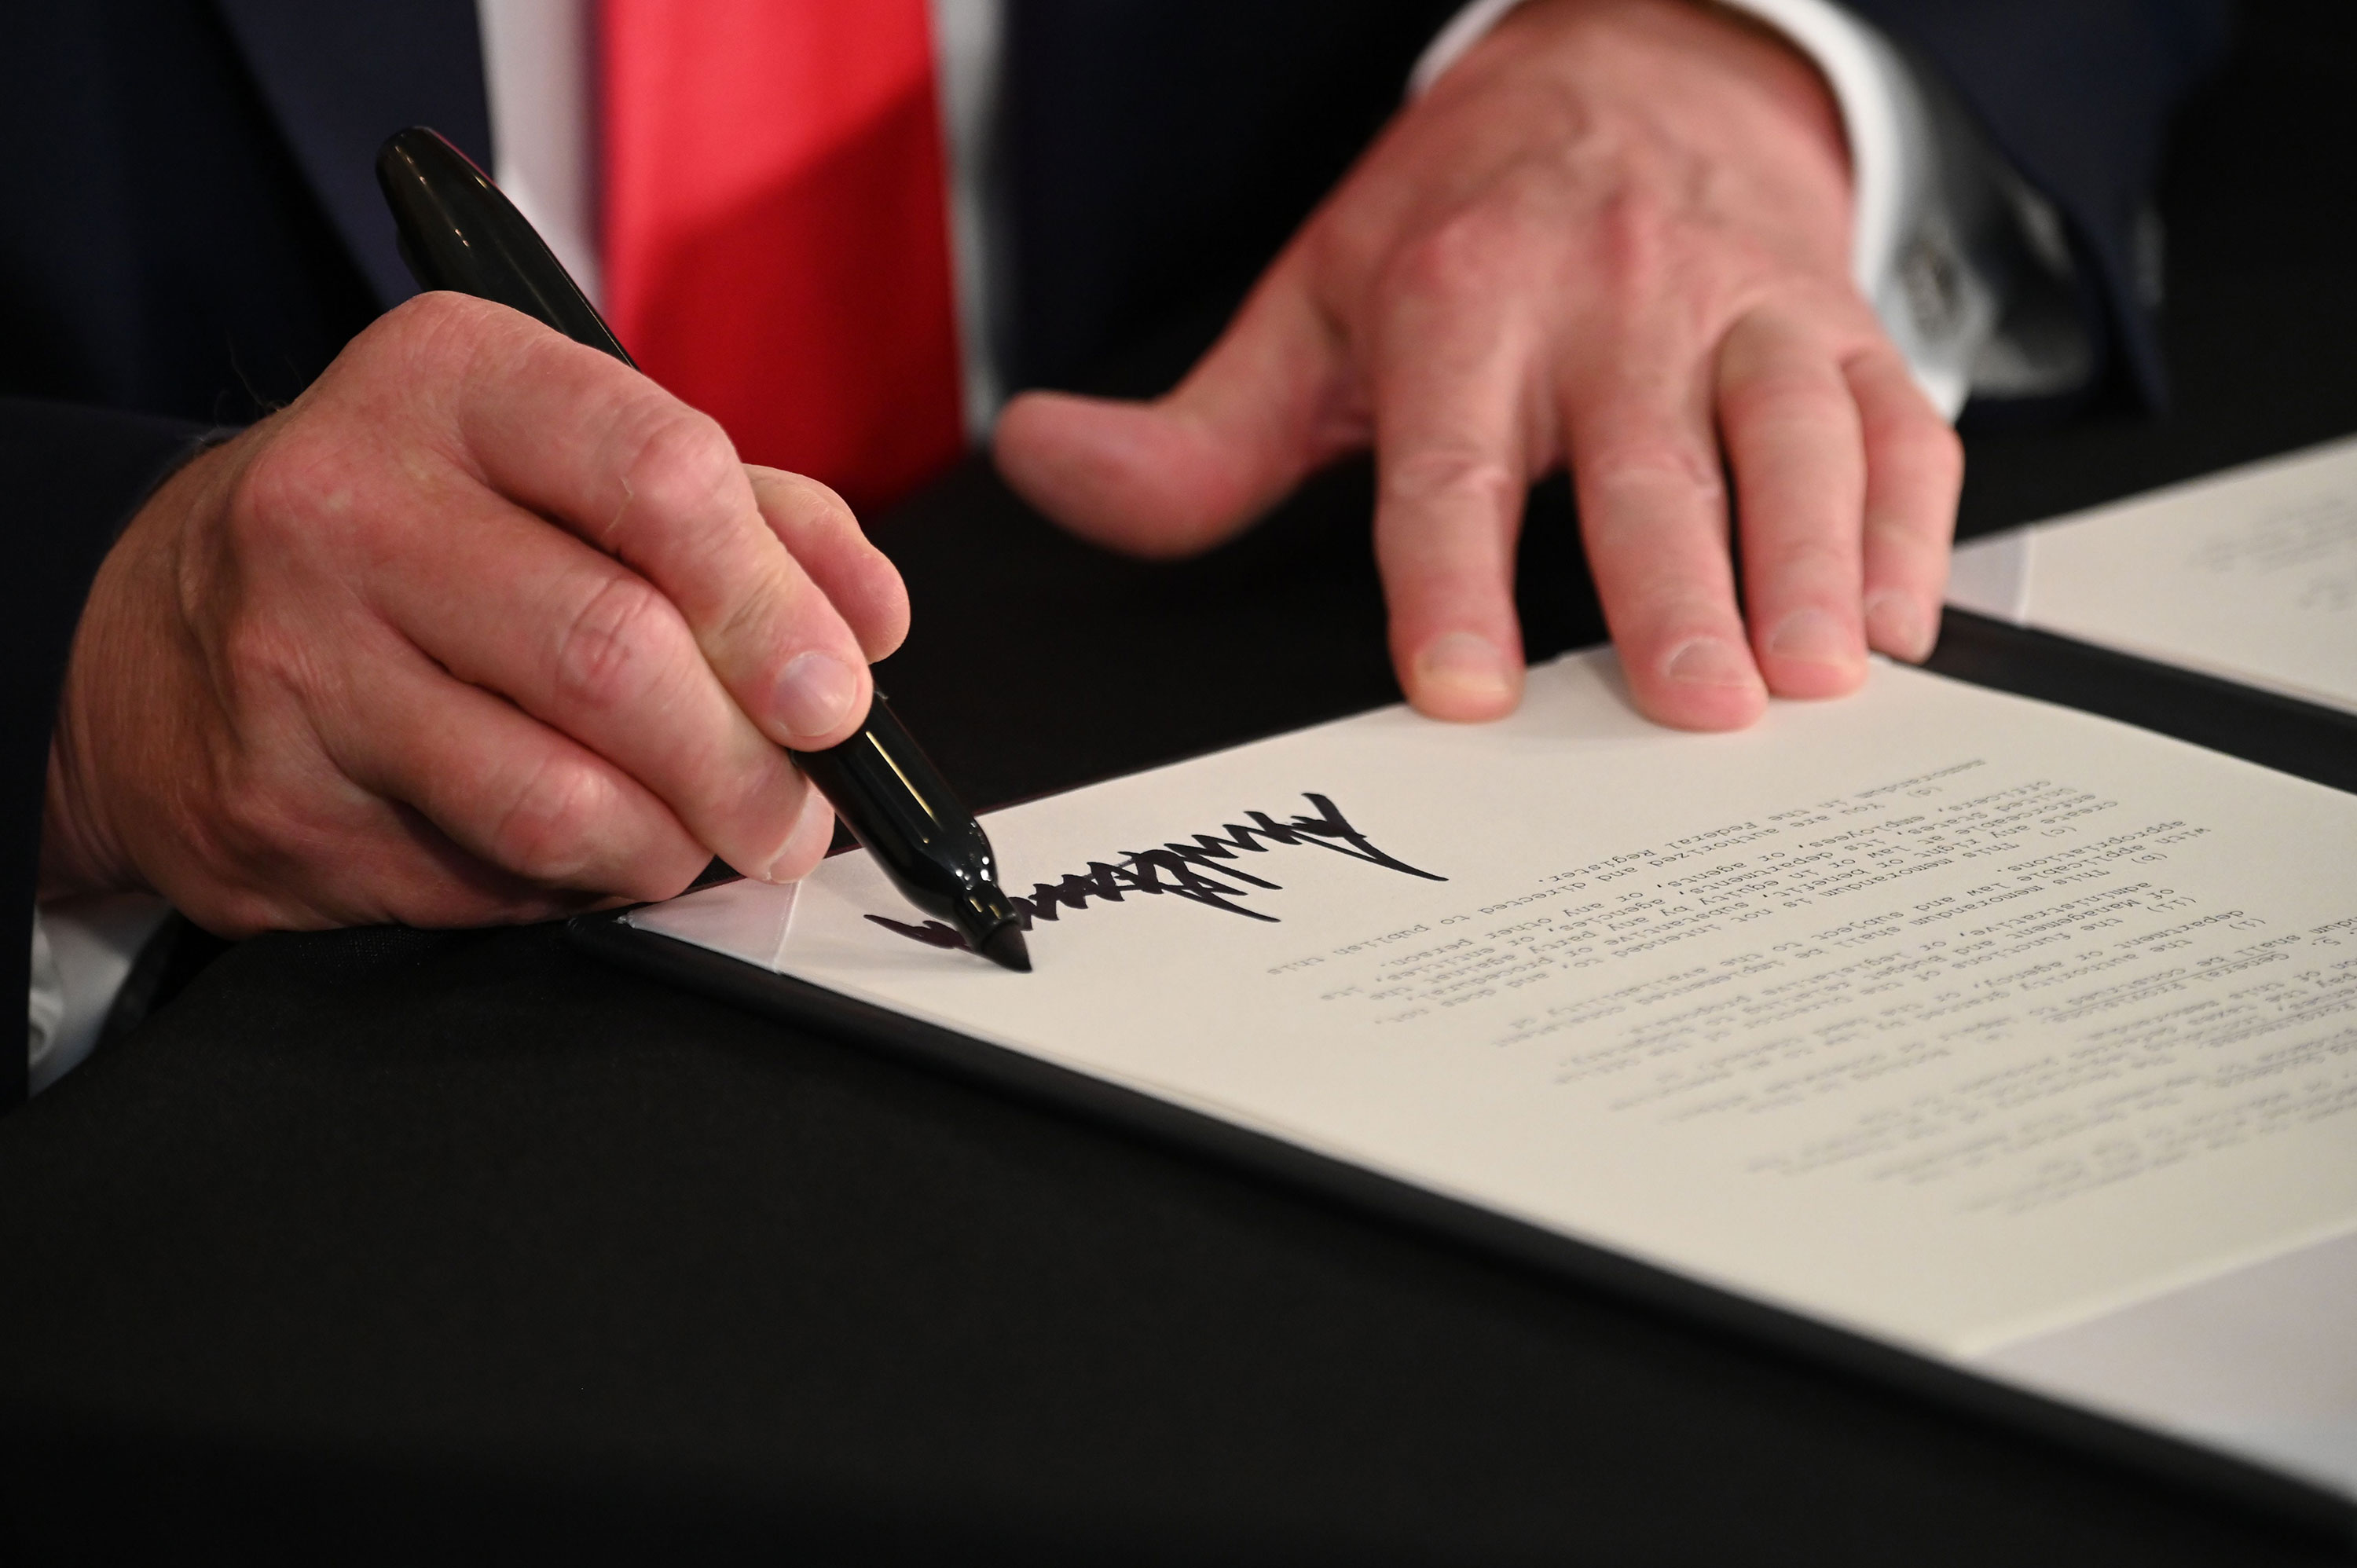 President Donald Trump signs executive orders during a news conference in Bedminster, New Jersey, on August 8.